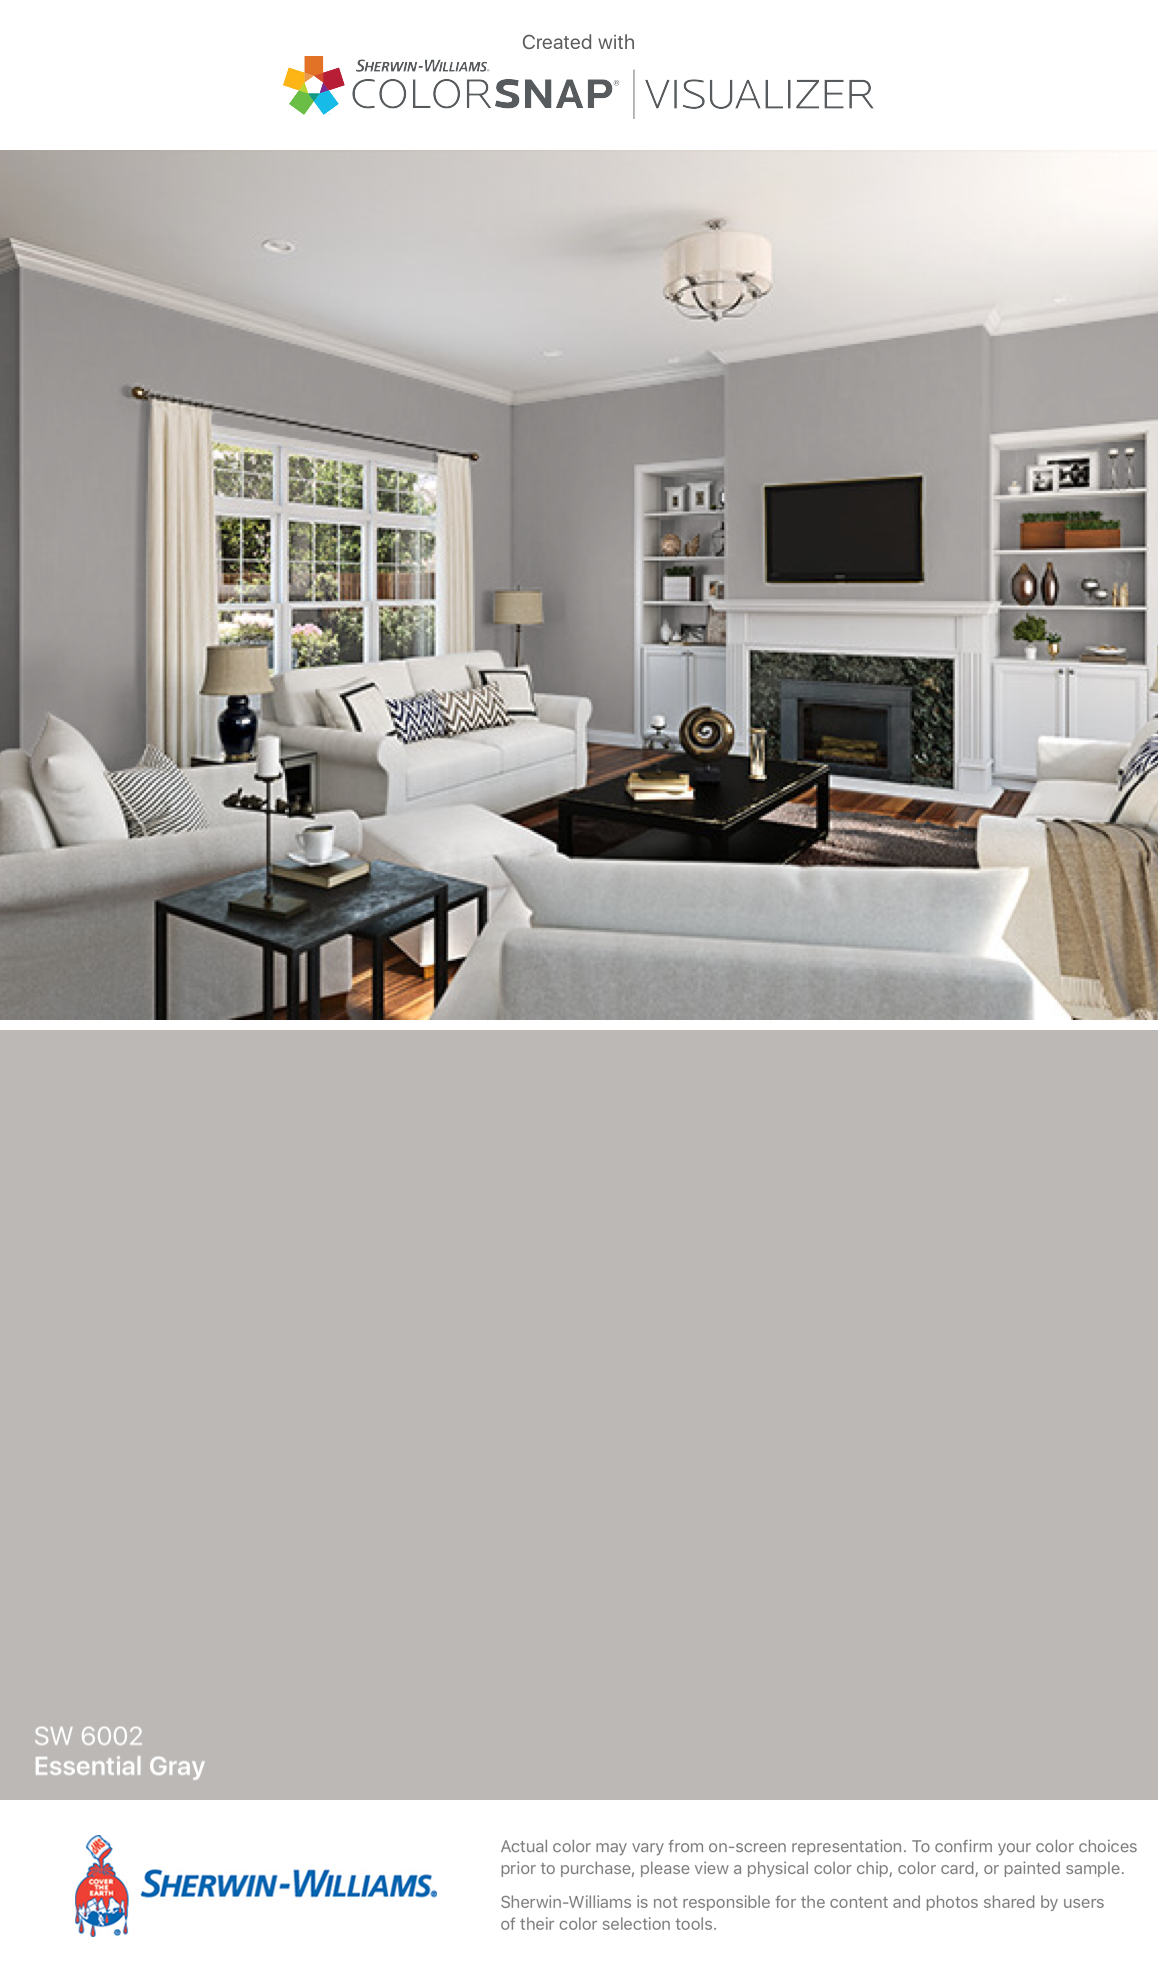 I Found This Color With Colorsnap Visualizer For Iphone By Sherwin Williams Essential Gray Sw